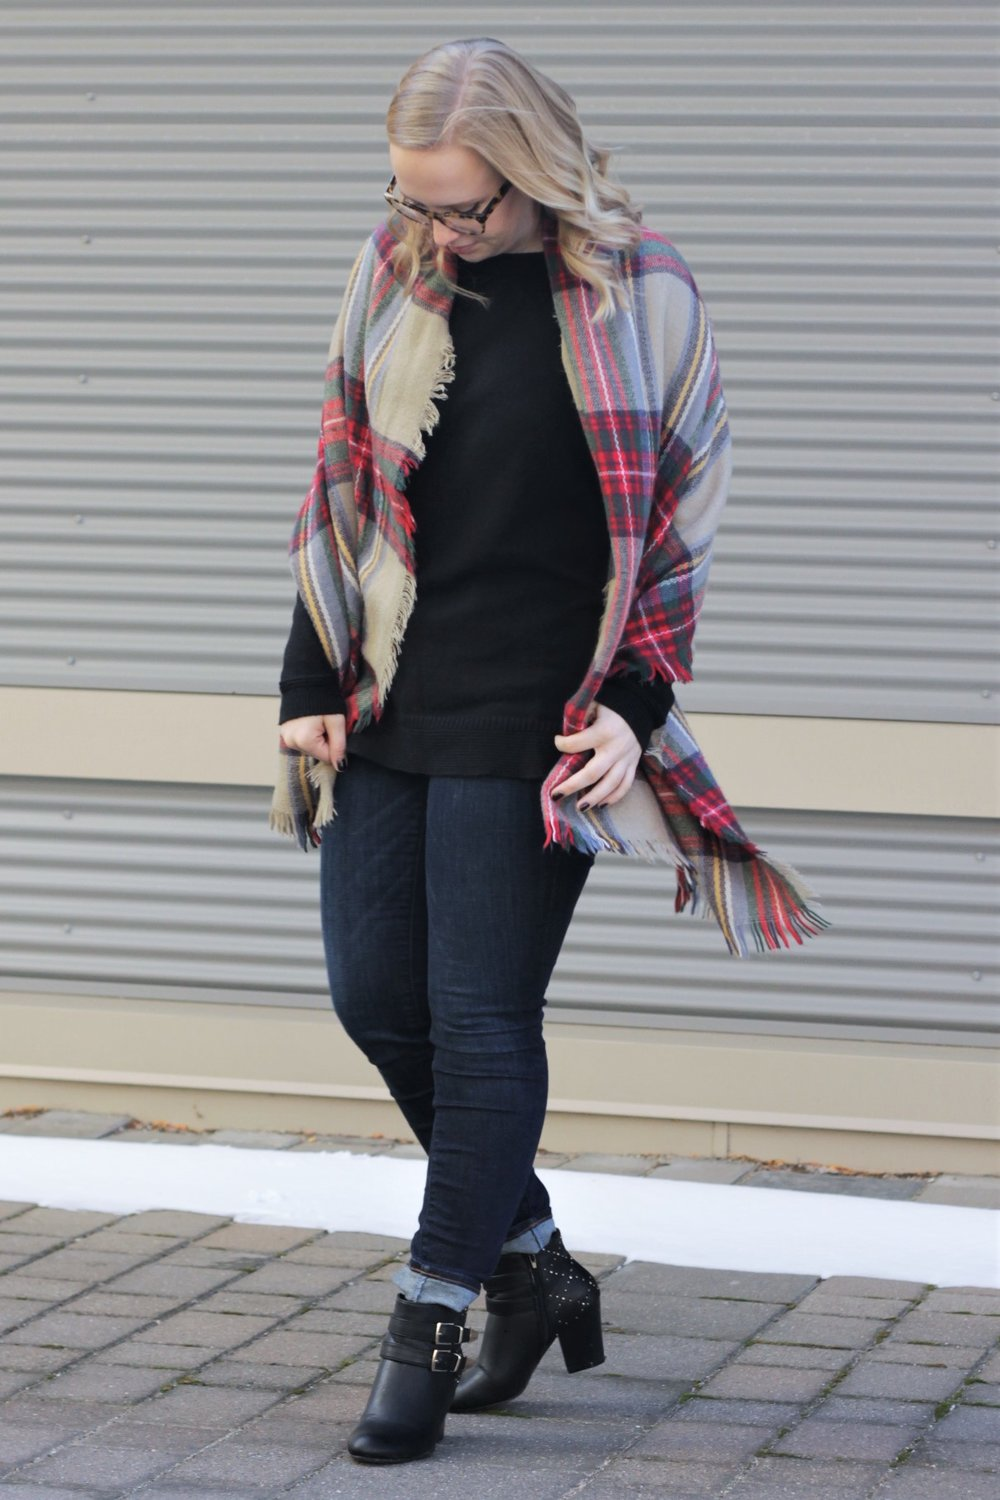 Thanksgiving Outfit | Plaid Blanket Scarf | Work & What She Wore